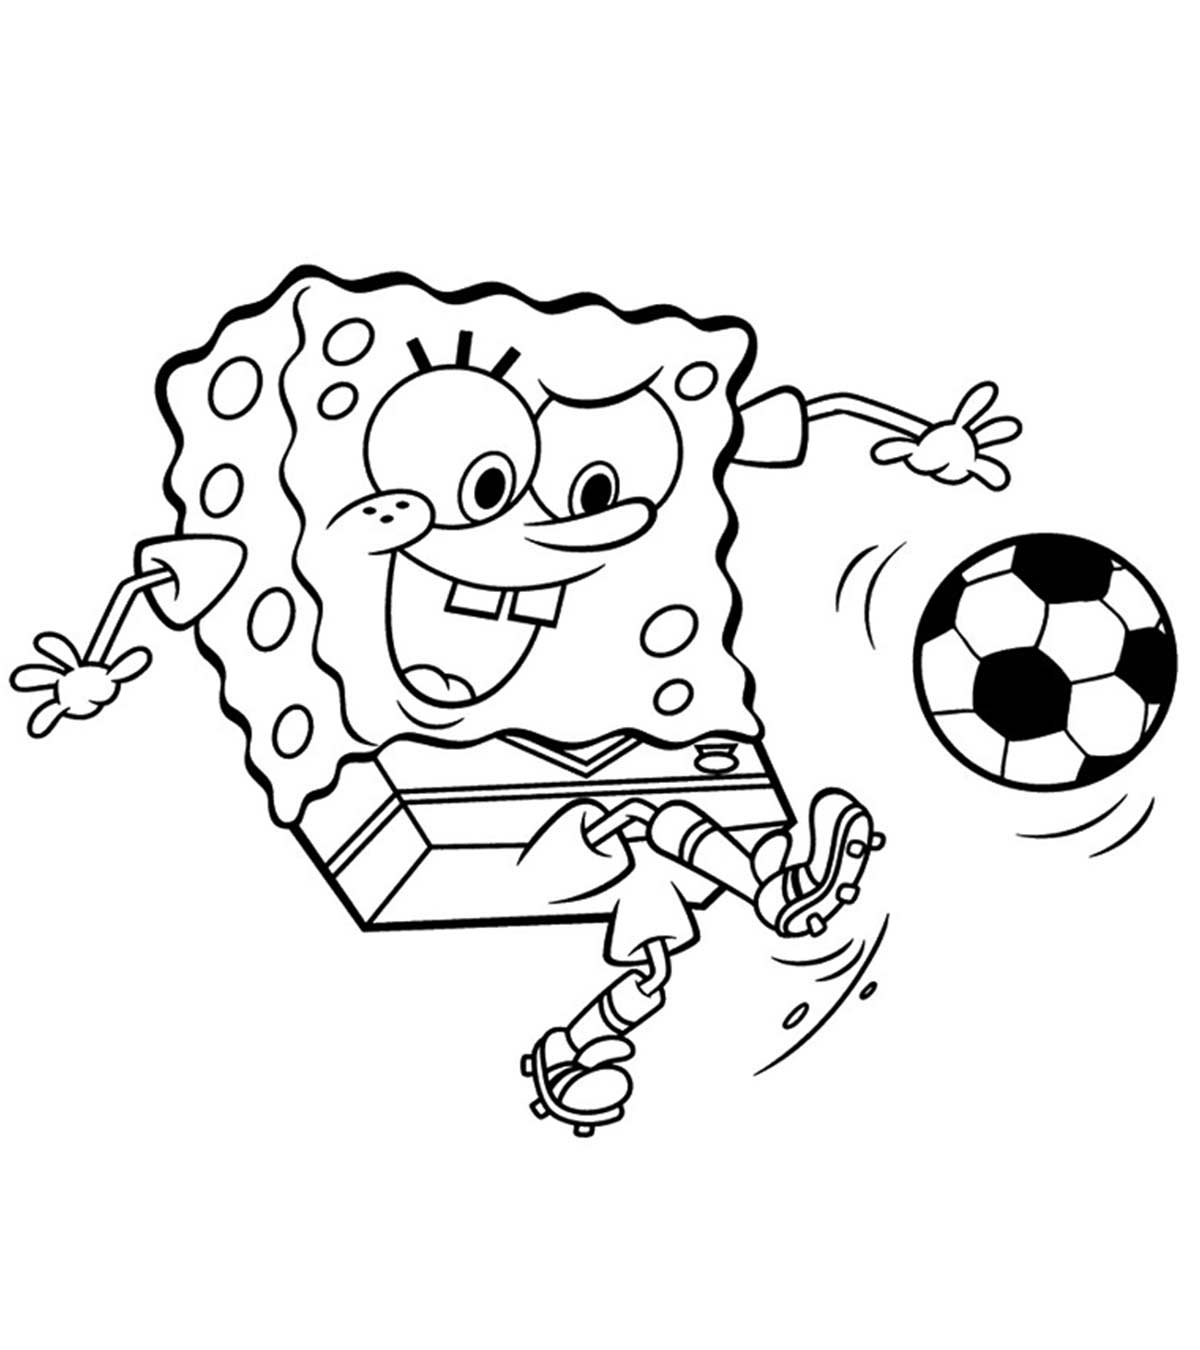 sport coloring pages full version of sports coloring pages educative printable sport coloring pages